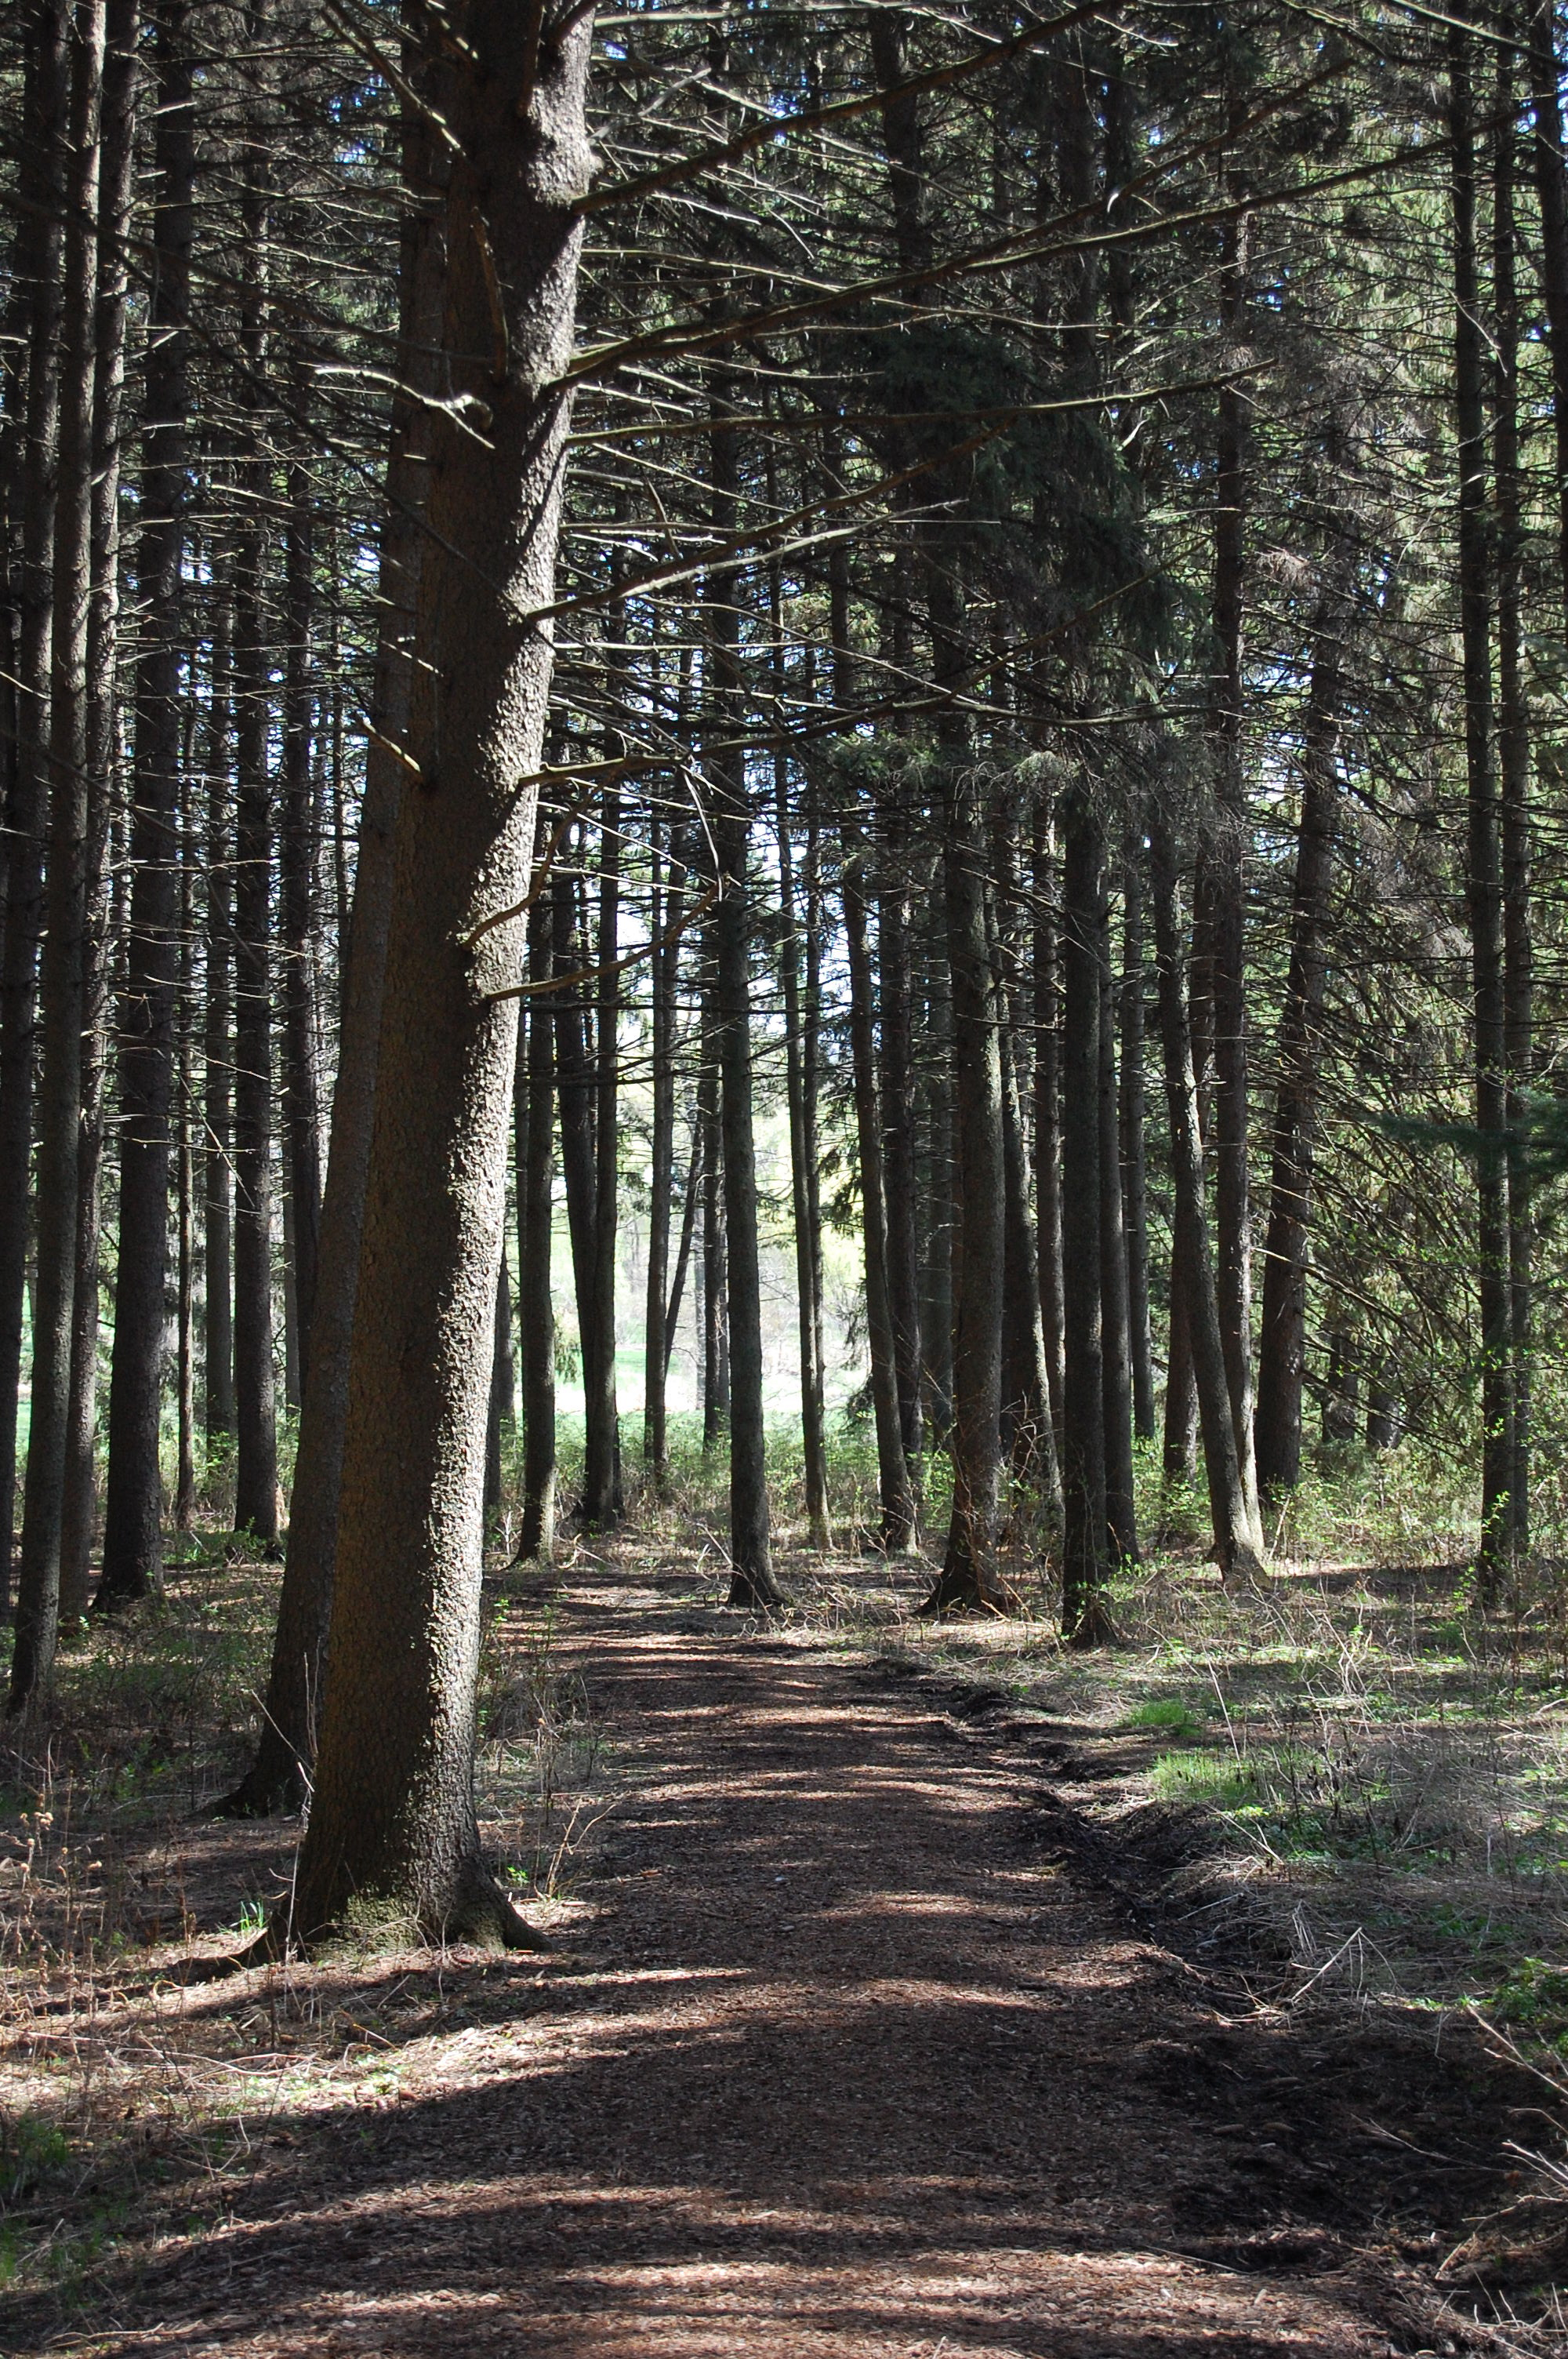 Photo of Spruce Plot at The Morton Arboretum, a grove of tall spruce trees